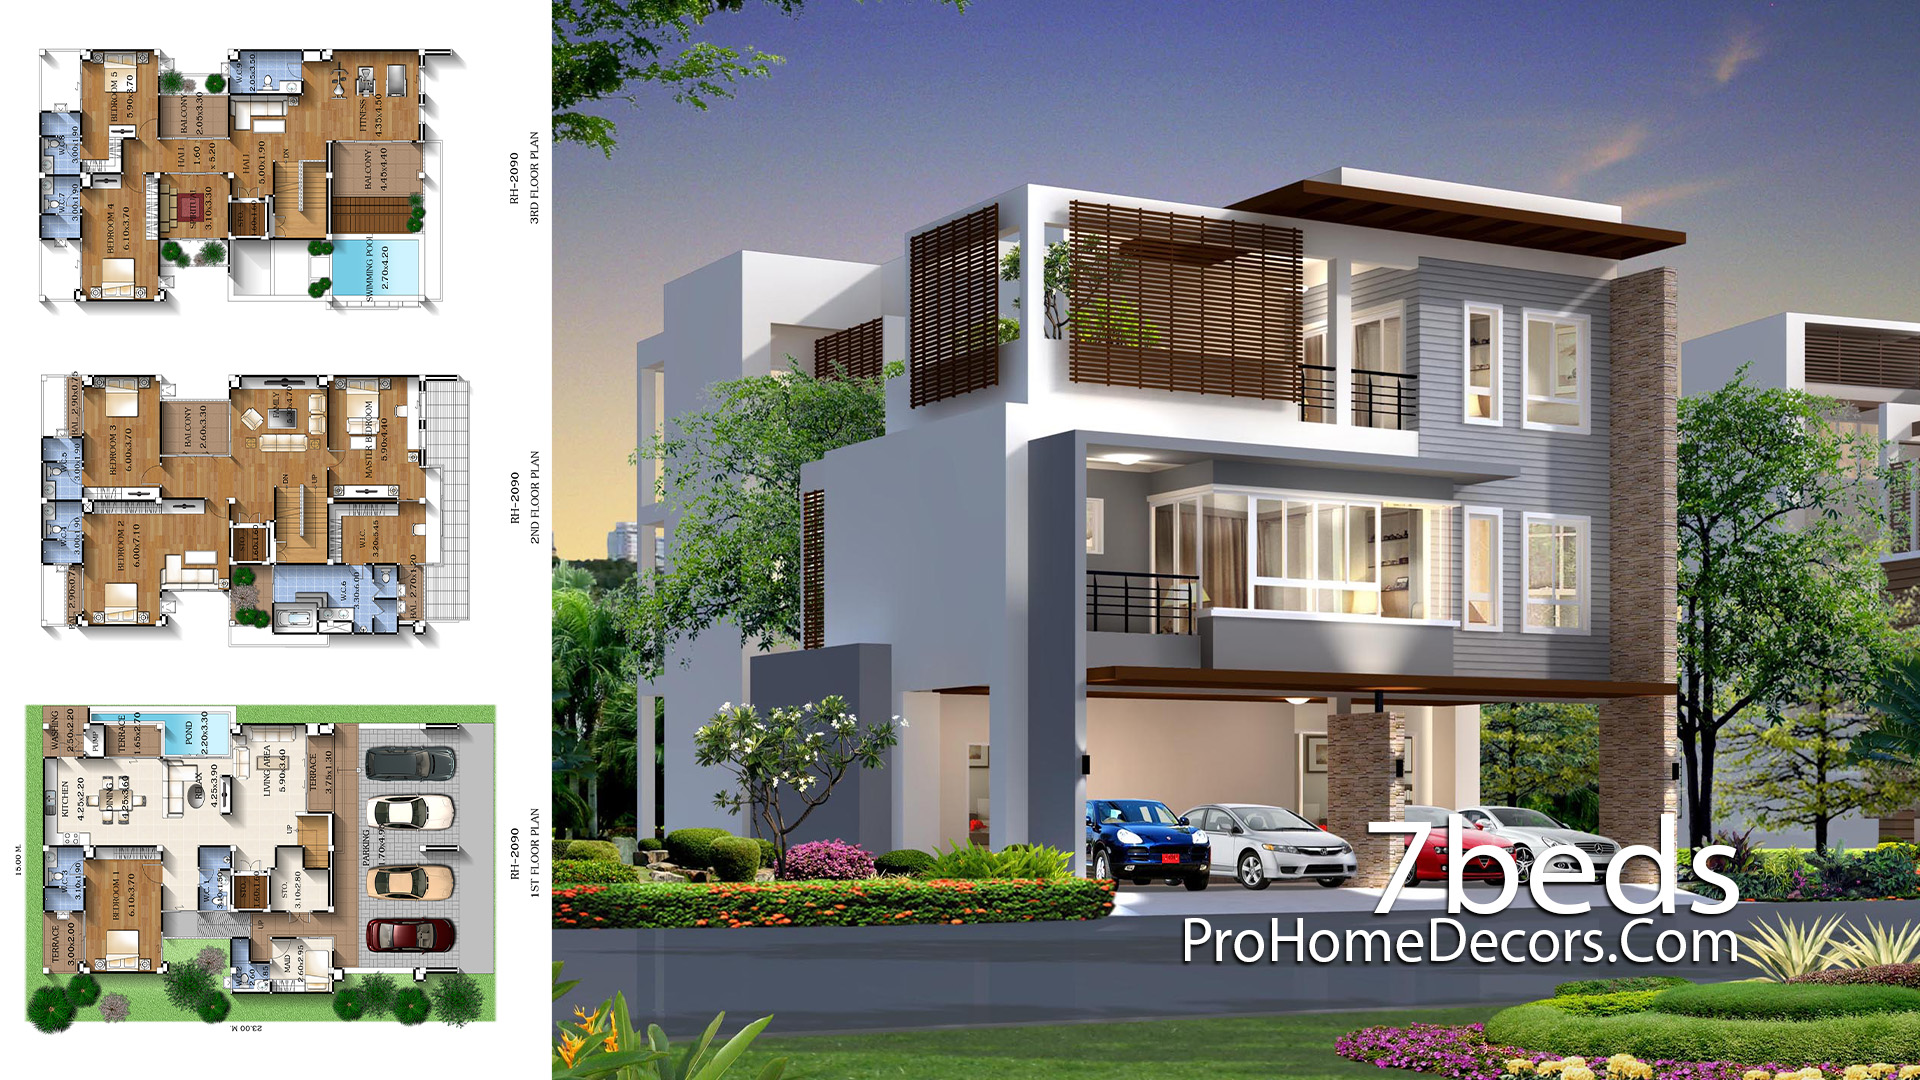 House Plan Plot 15x23 meter with 7 Bedrooms